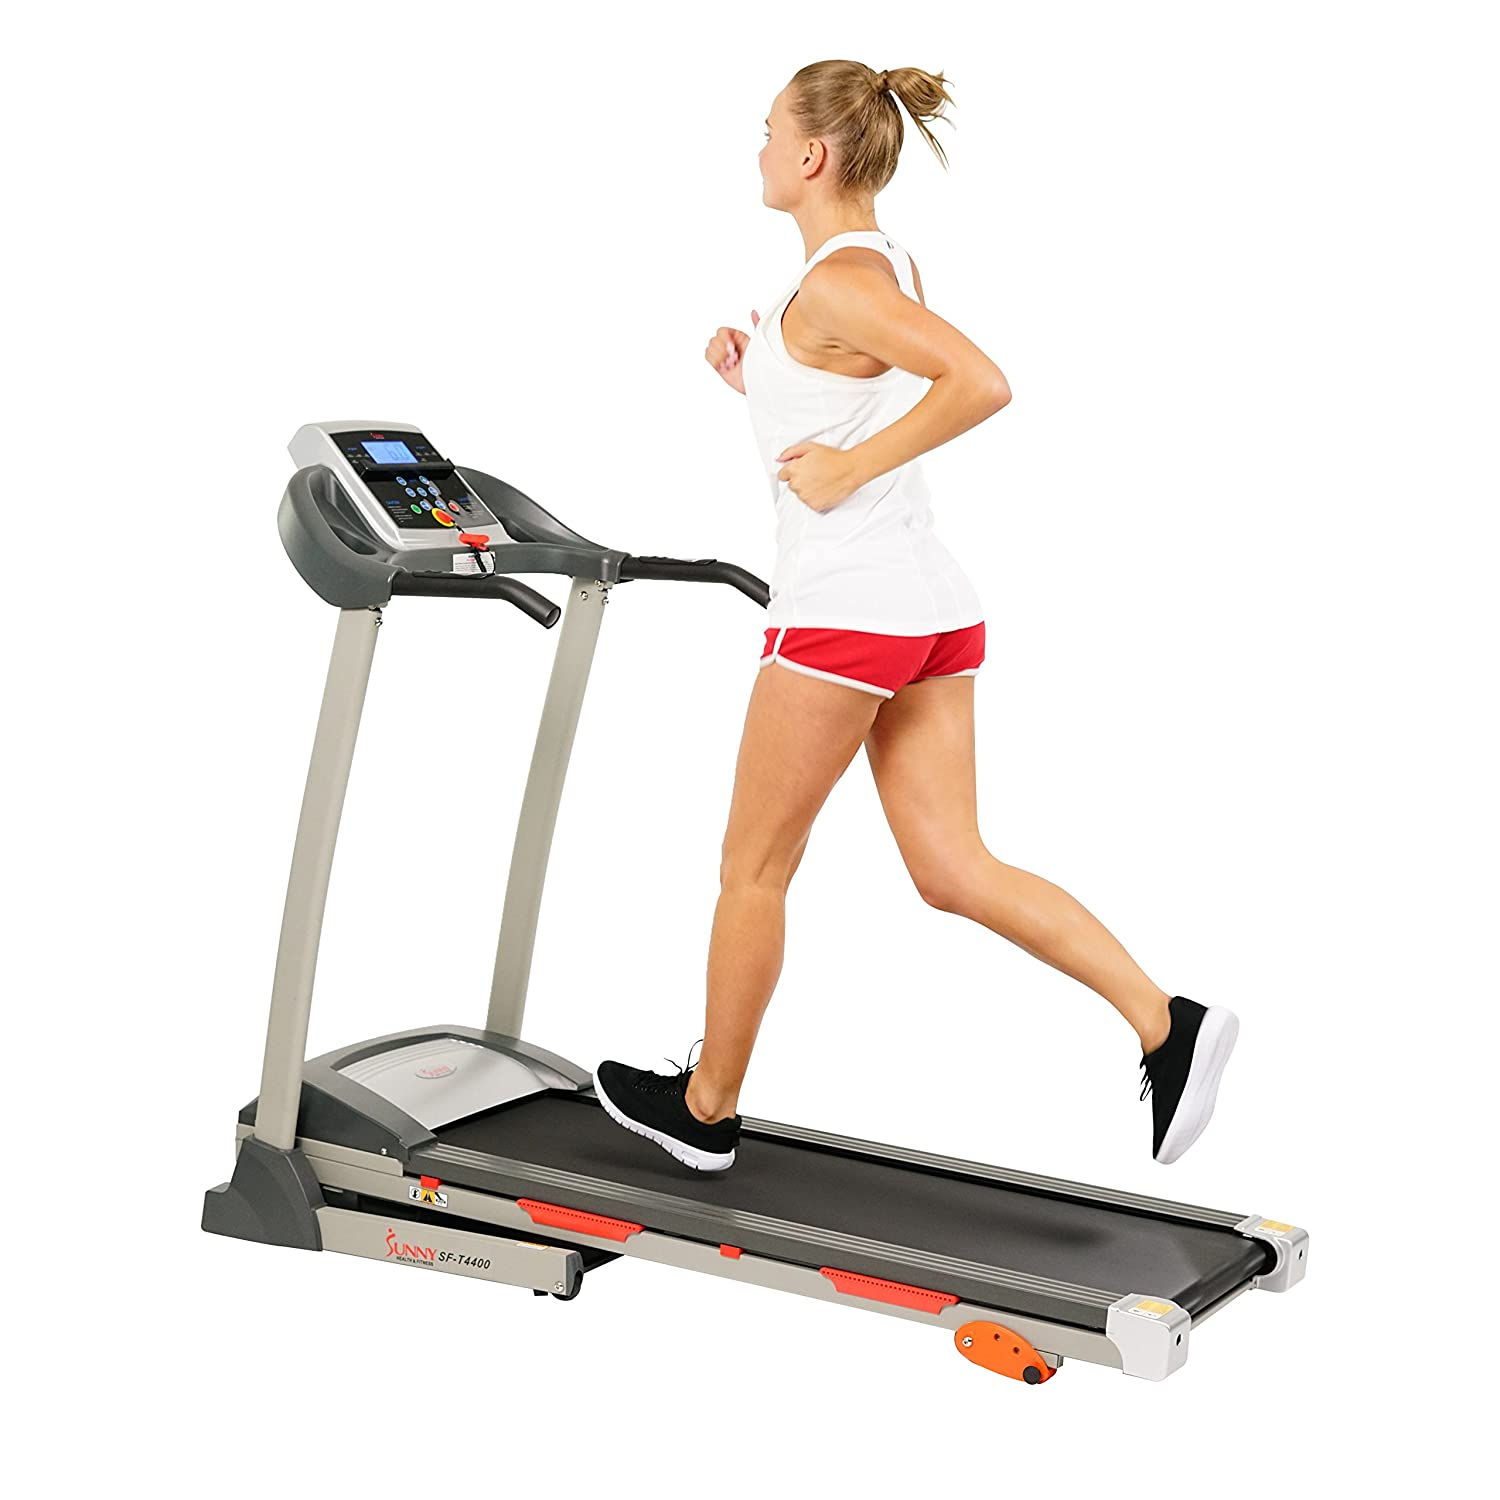 The Best Treadmill Under $500 2